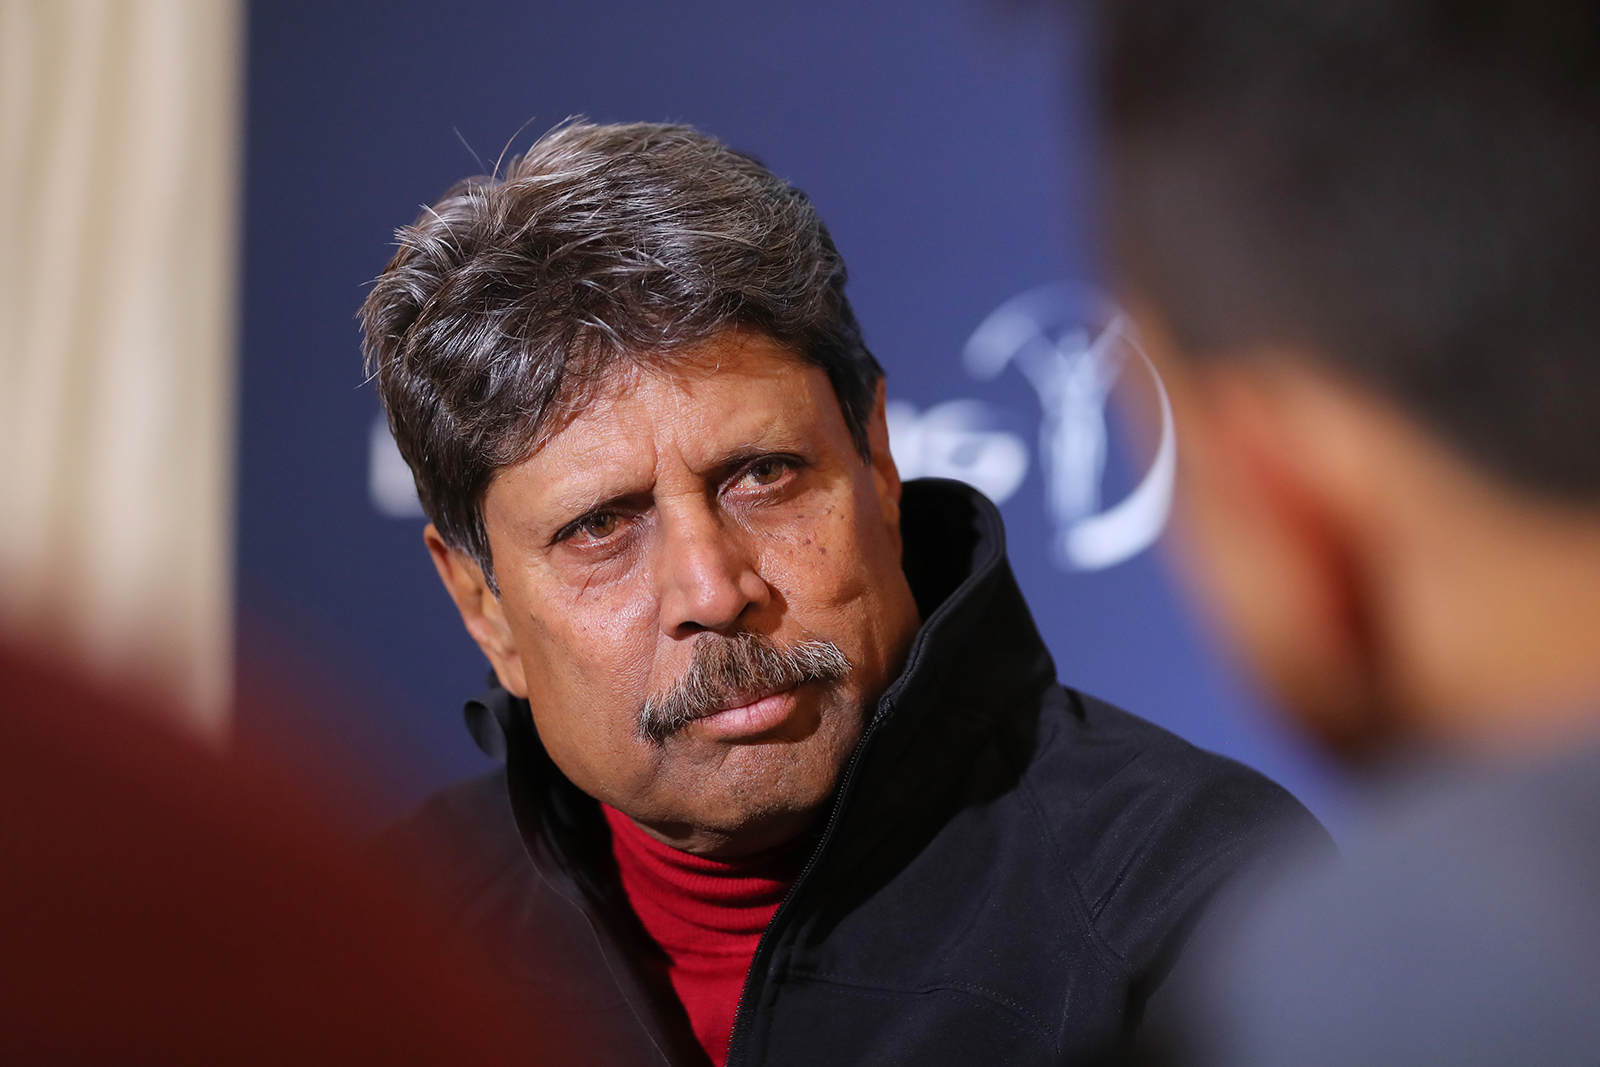 Kapil Dev, legendary Indian cricketer, hospitalized after heart attack